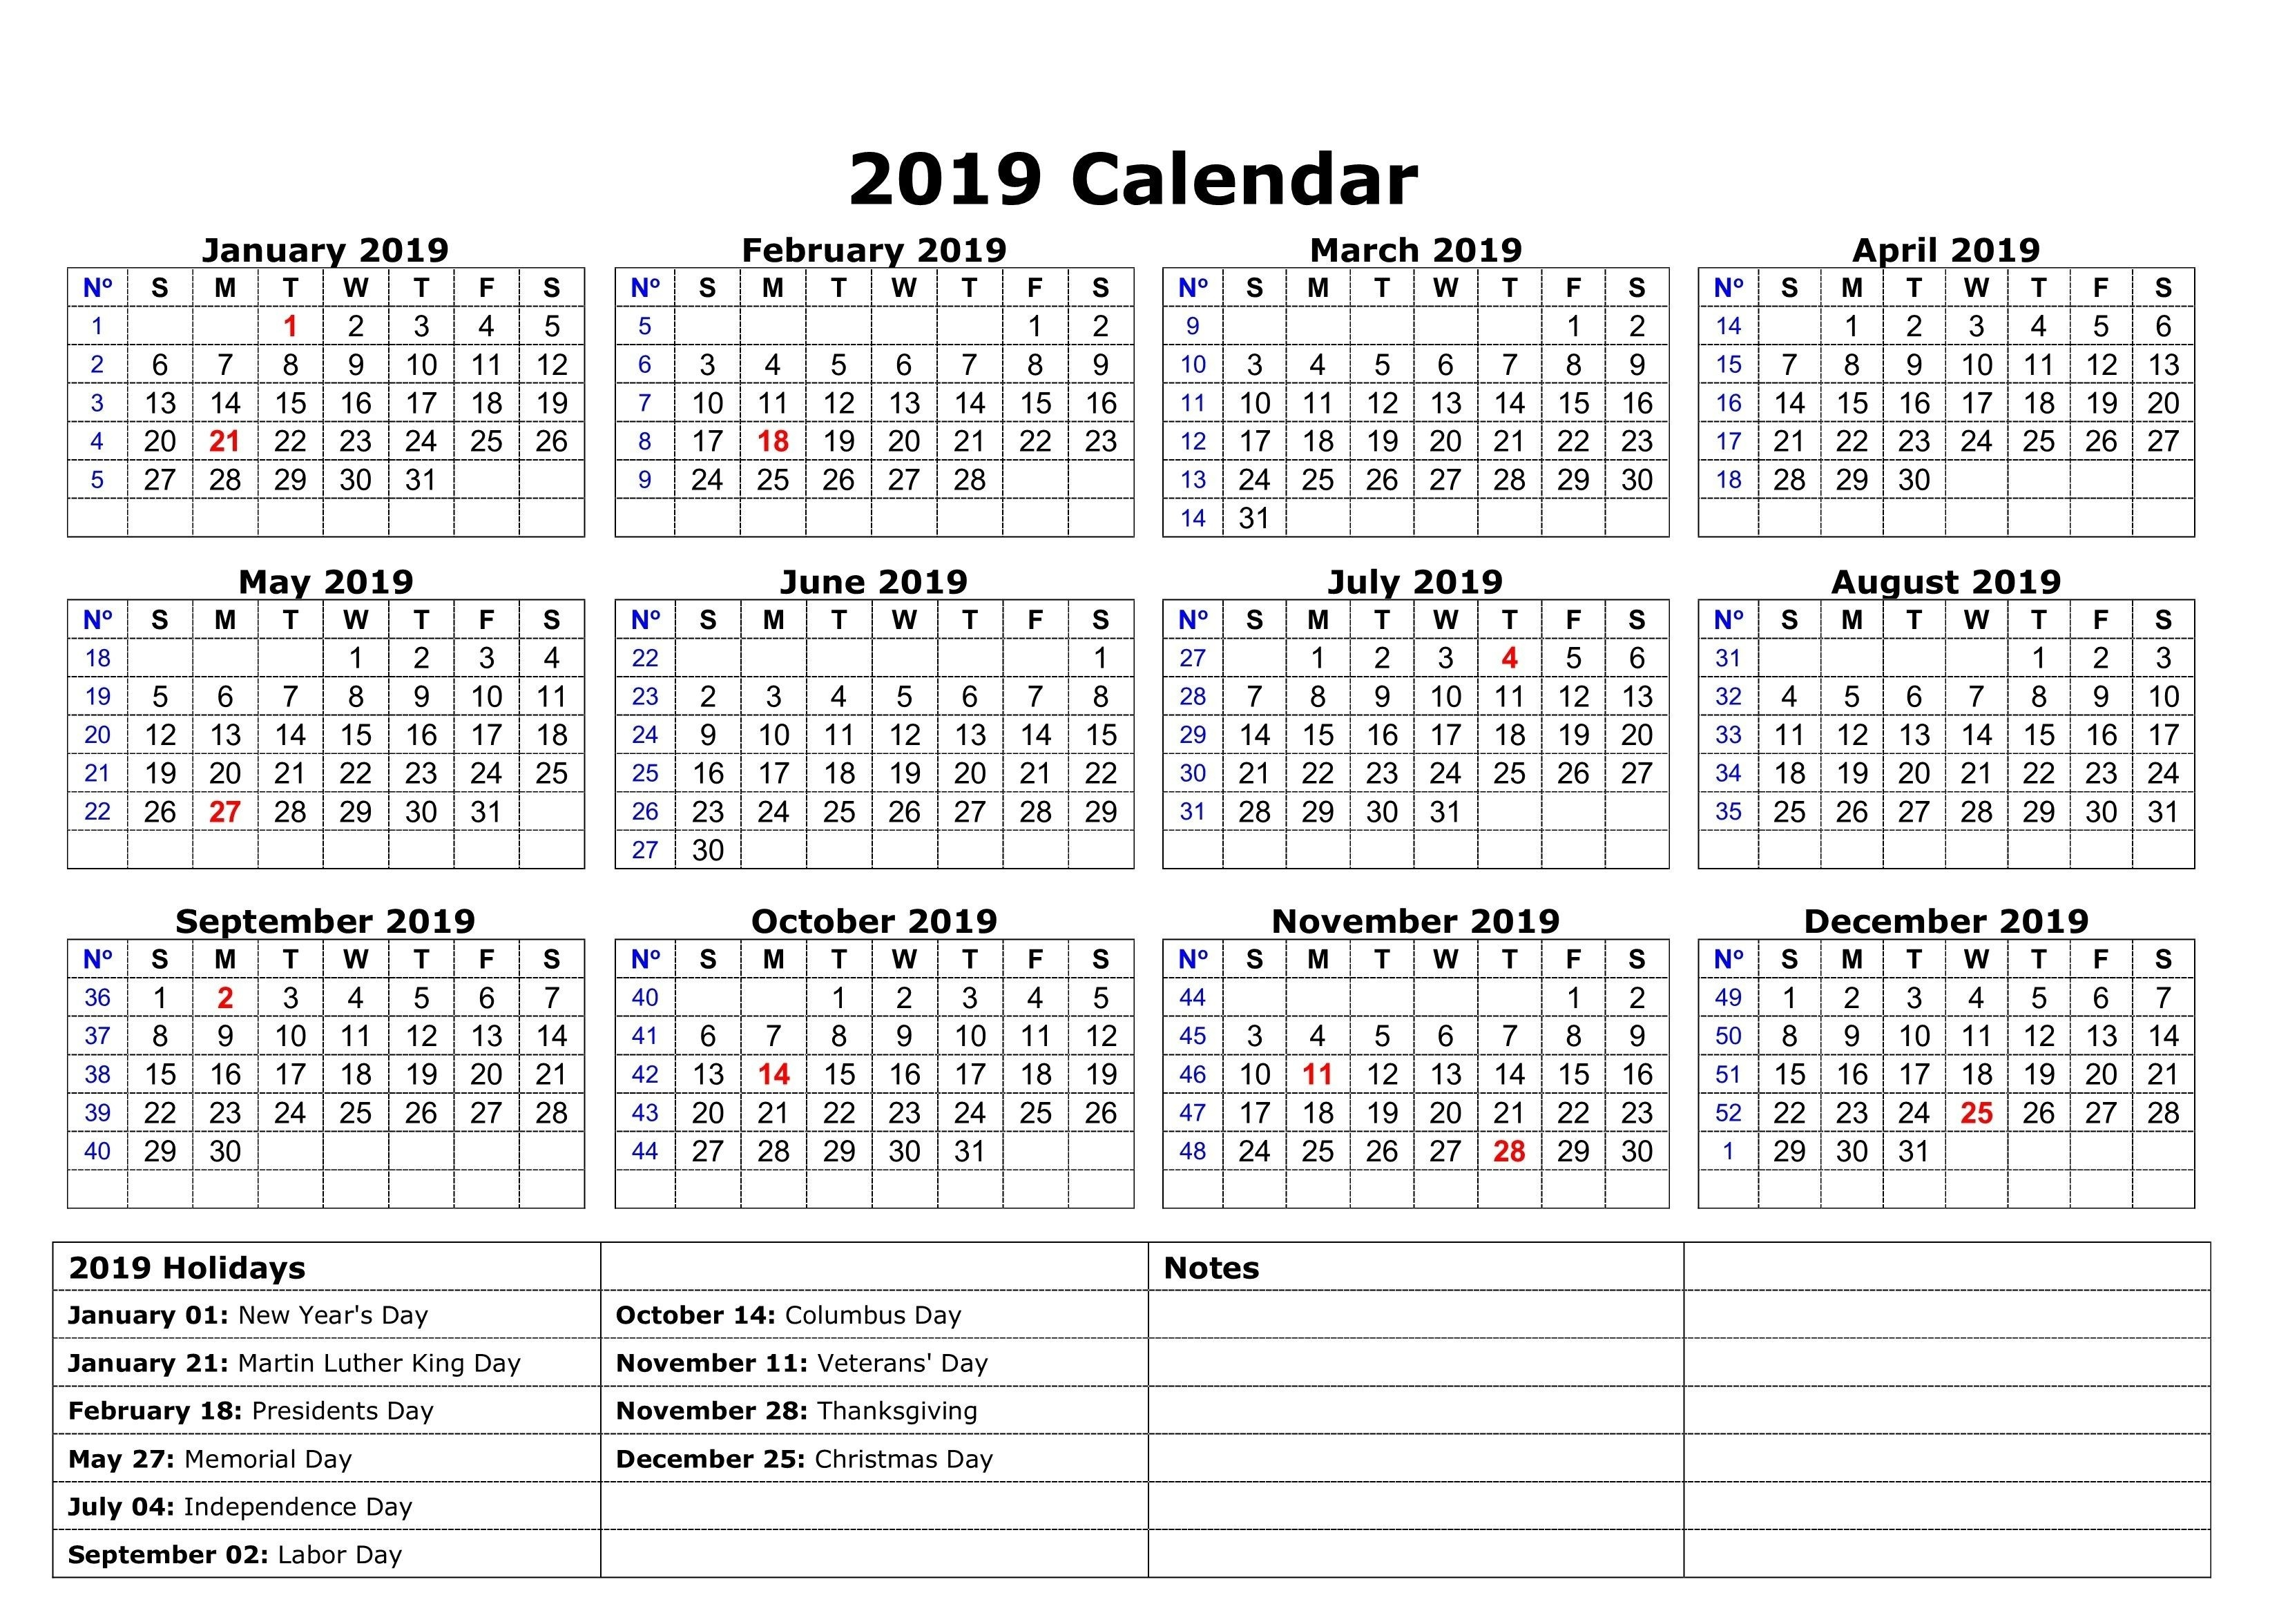 Printable 2019 Calendar With Holidays South Africa-Sa Calendar With Holidays